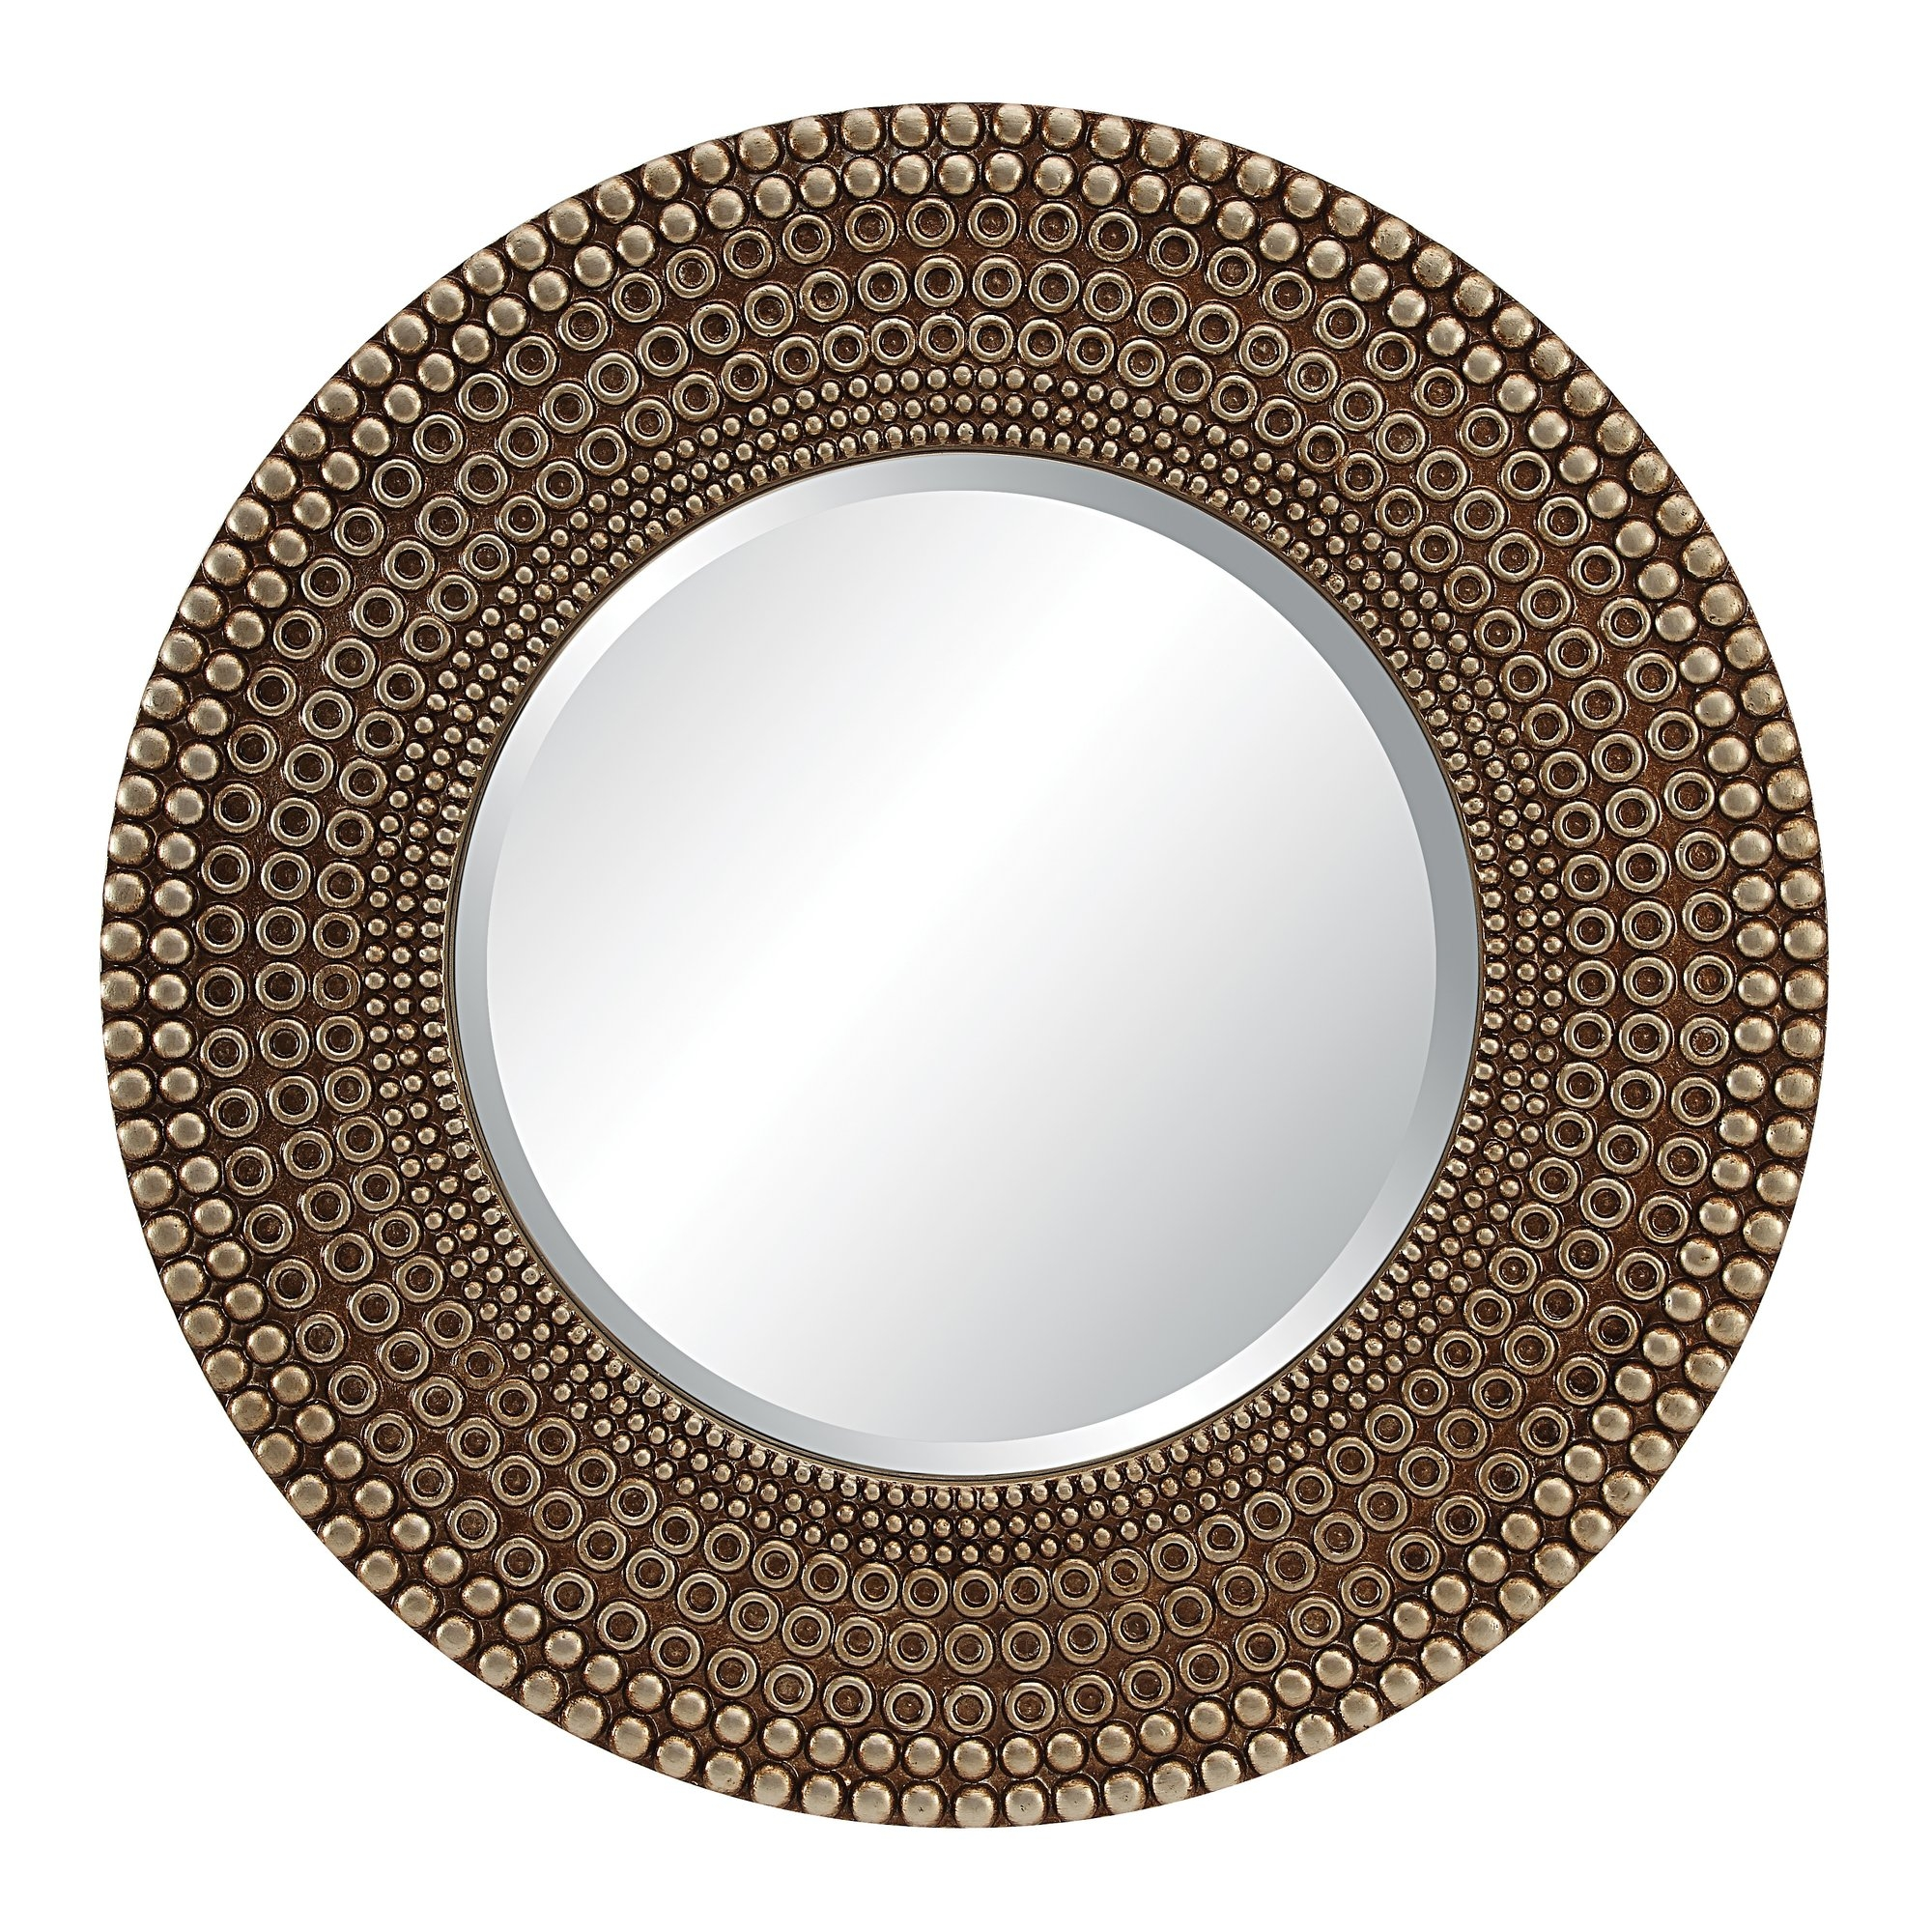 Round Mirrors Youll Love Wayfair In Large Round Wooden Mirror (Image 9 of 15)